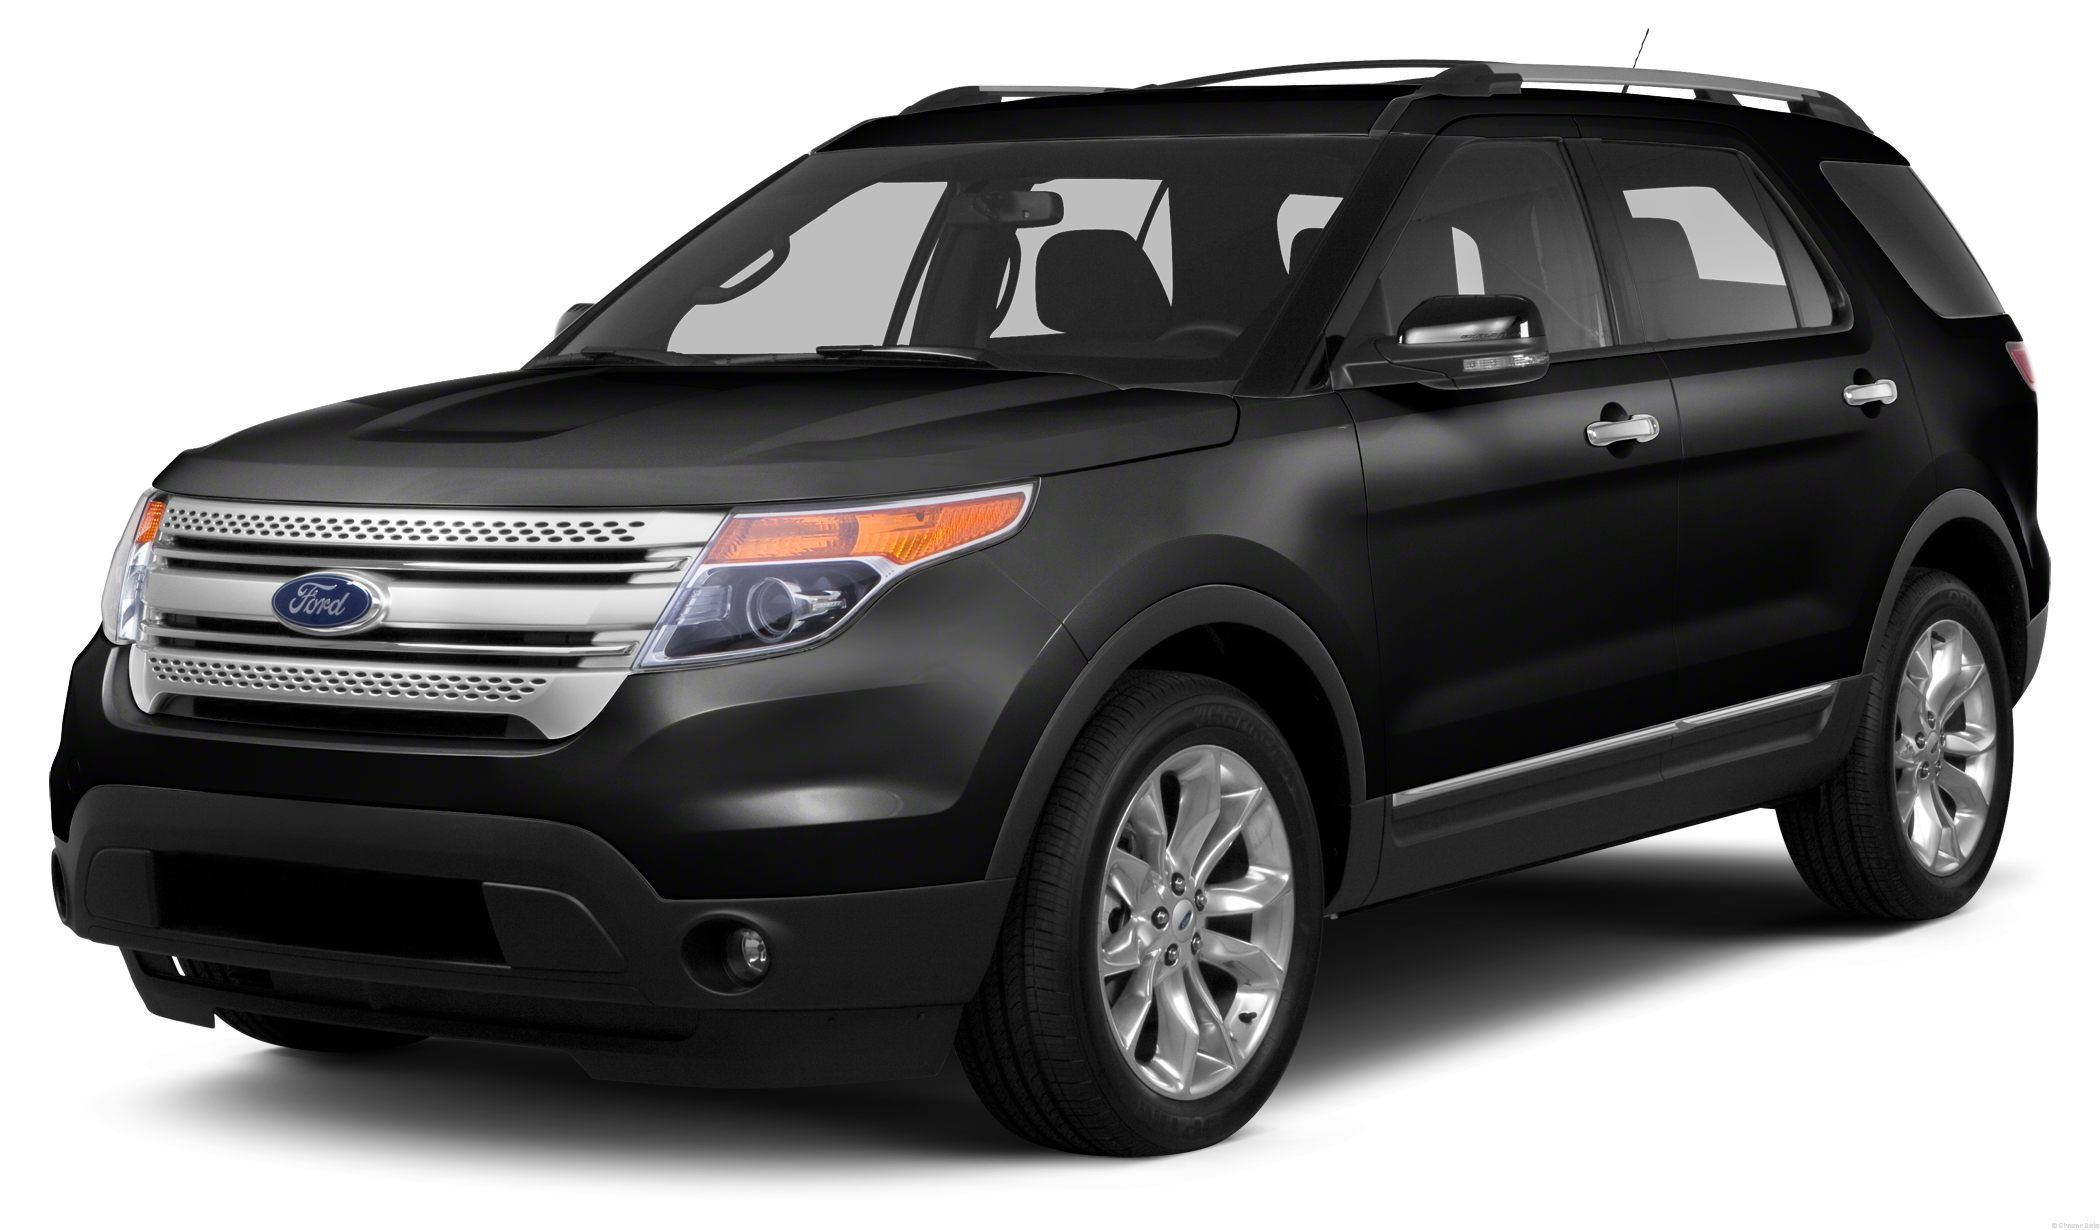 ford - Ford Explorer 2012 Black